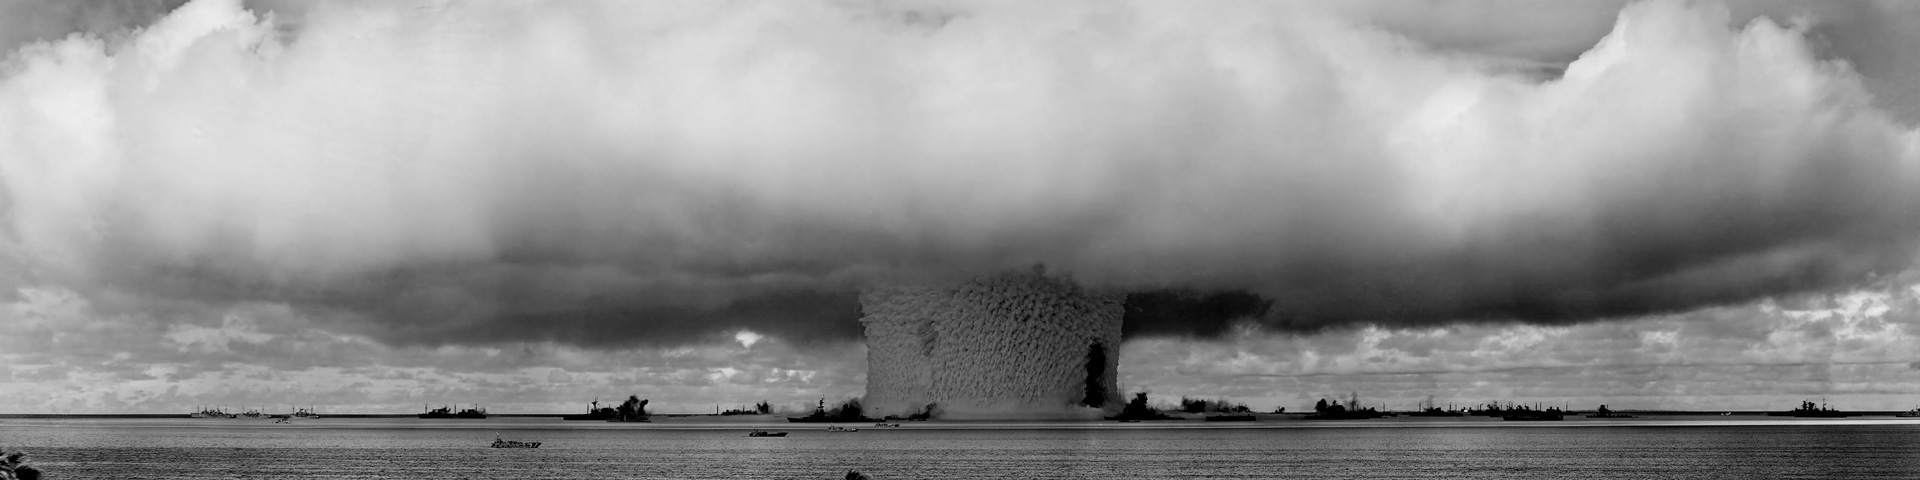 A nuclear blast at sea. Palm trees can be seen in the foreground, while ships appear in the mid-ground. The blast looms over all.